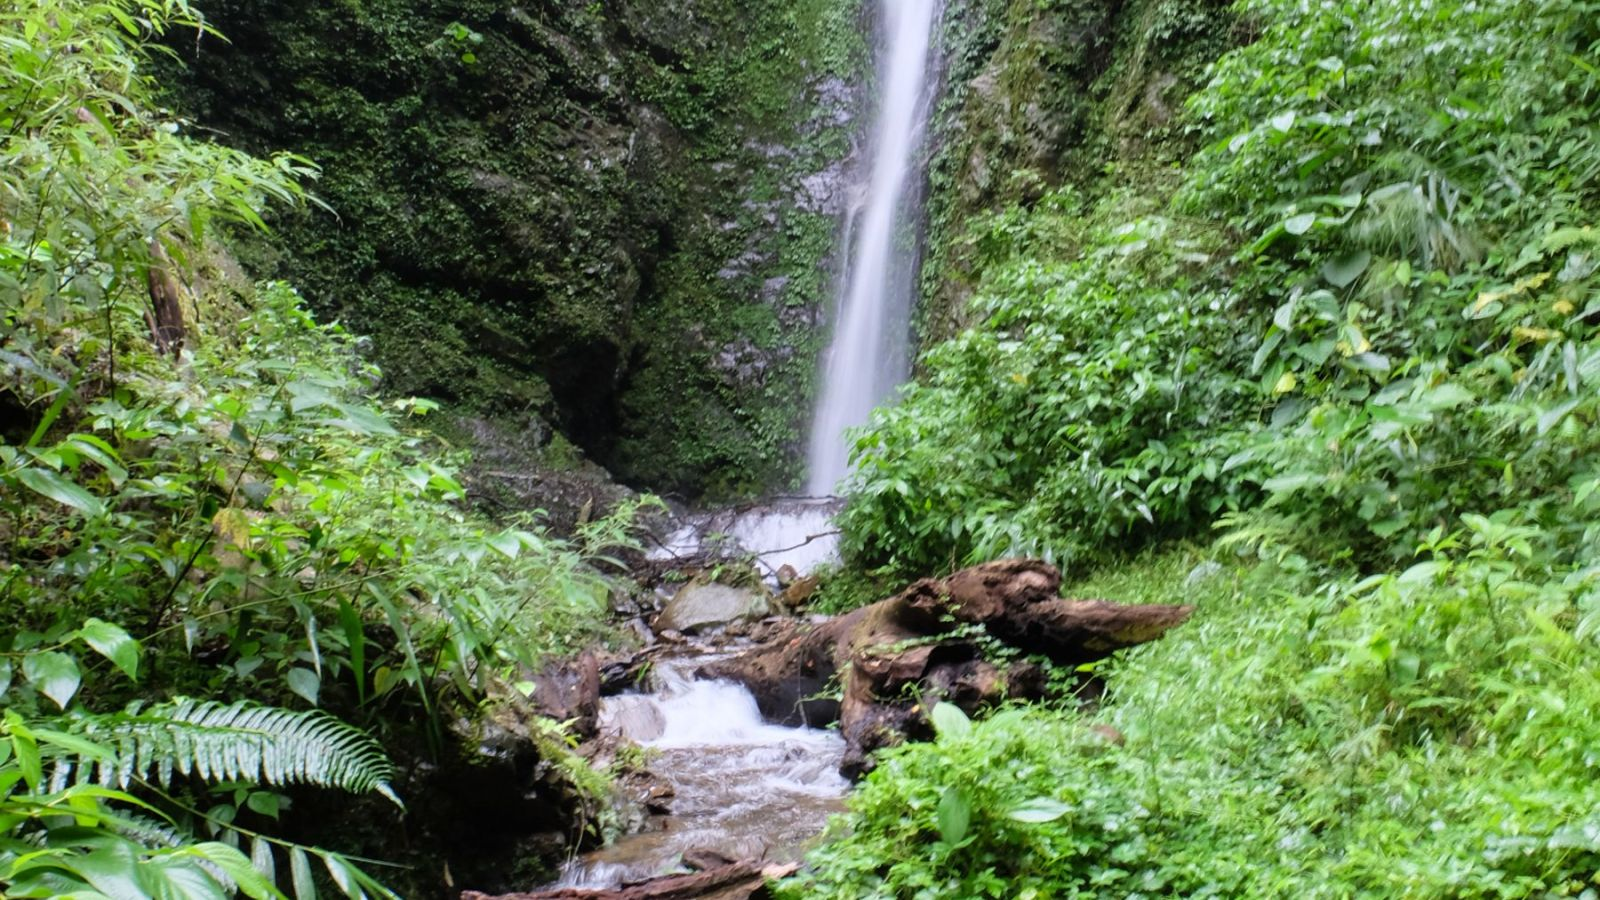 a photo of a waterfall in gunung leuser national park.